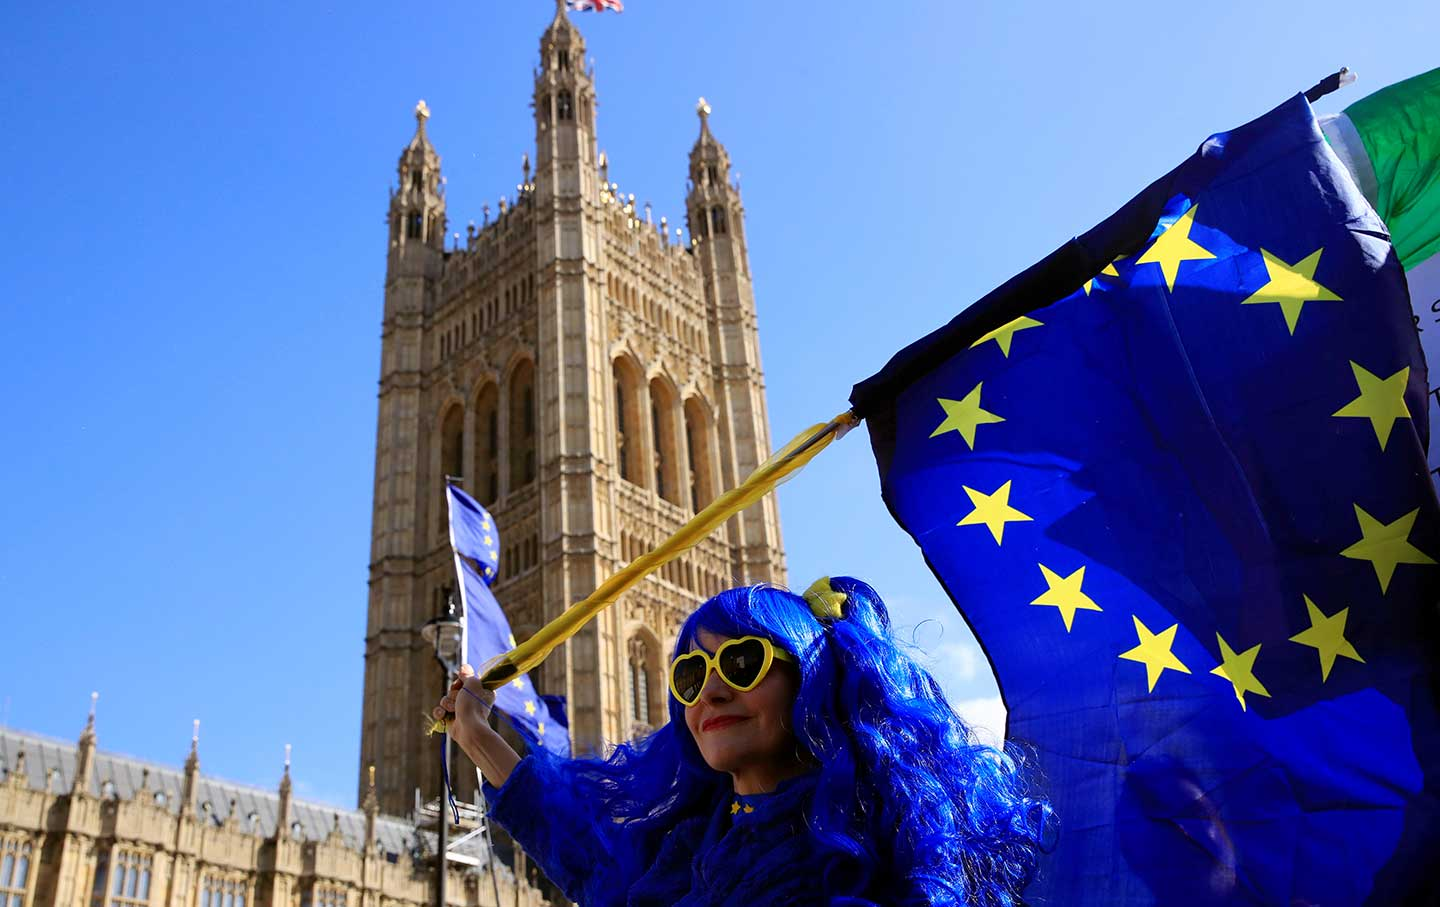 An anti-Brexit protester reacts outside the Houses of Parliament in London, on April 10, 2019.  (REUTERS / Gonzalo Fuentes)